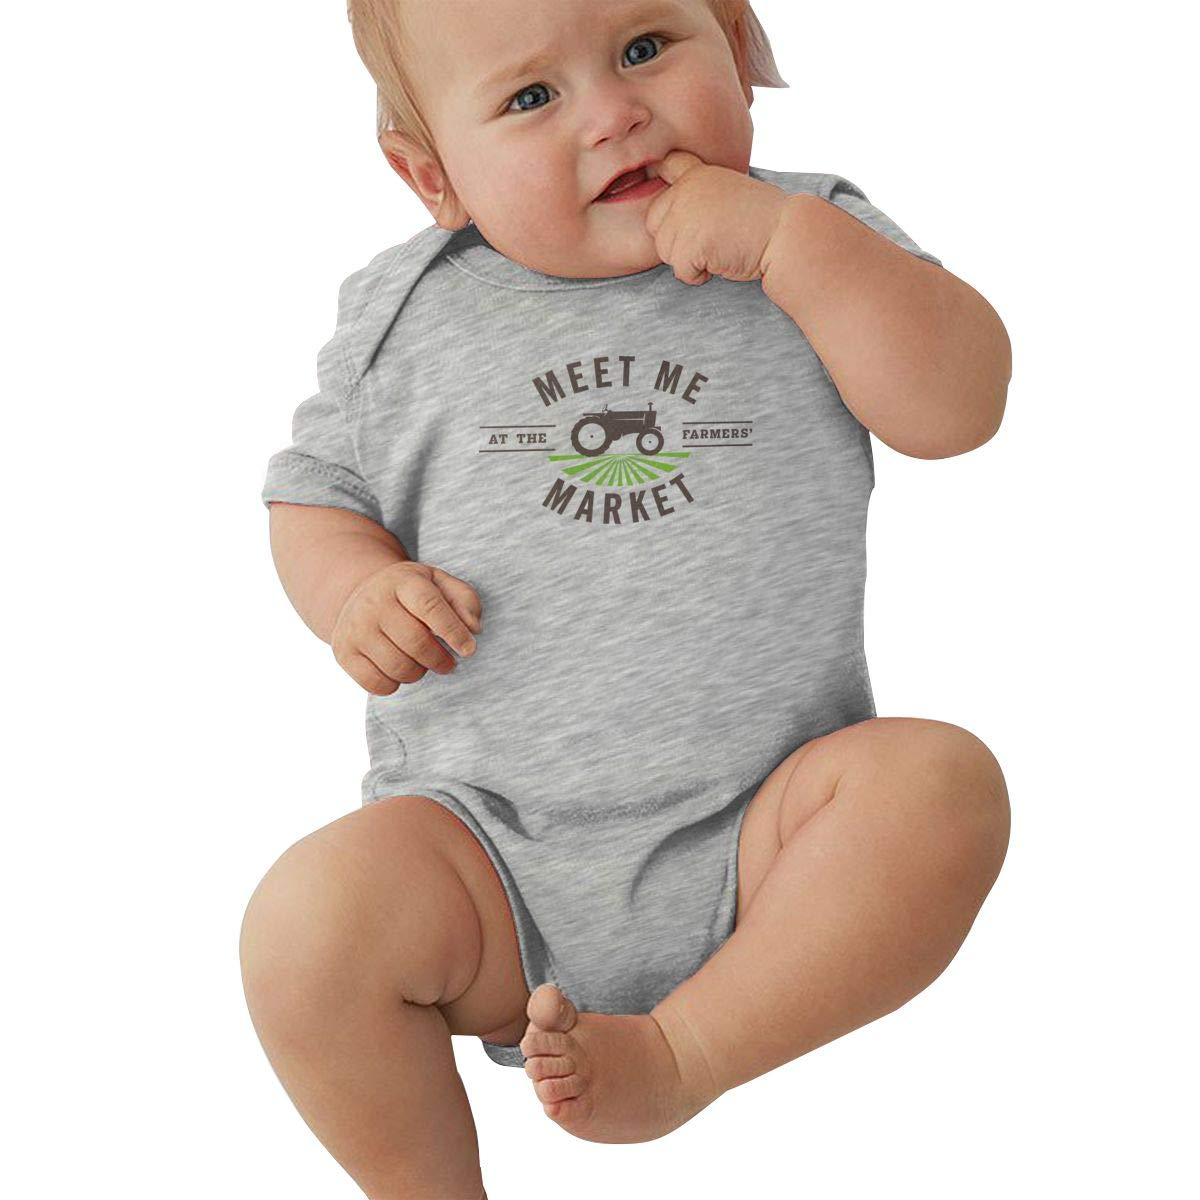 Cotton Baby Onesies-Unisex Breathable Rompers The Farmers Market Bodysuits Lab Shoulder Neckline Jumpsuit Infant One-Piece Outfit Short Sleeve Jersey 0-24 Months